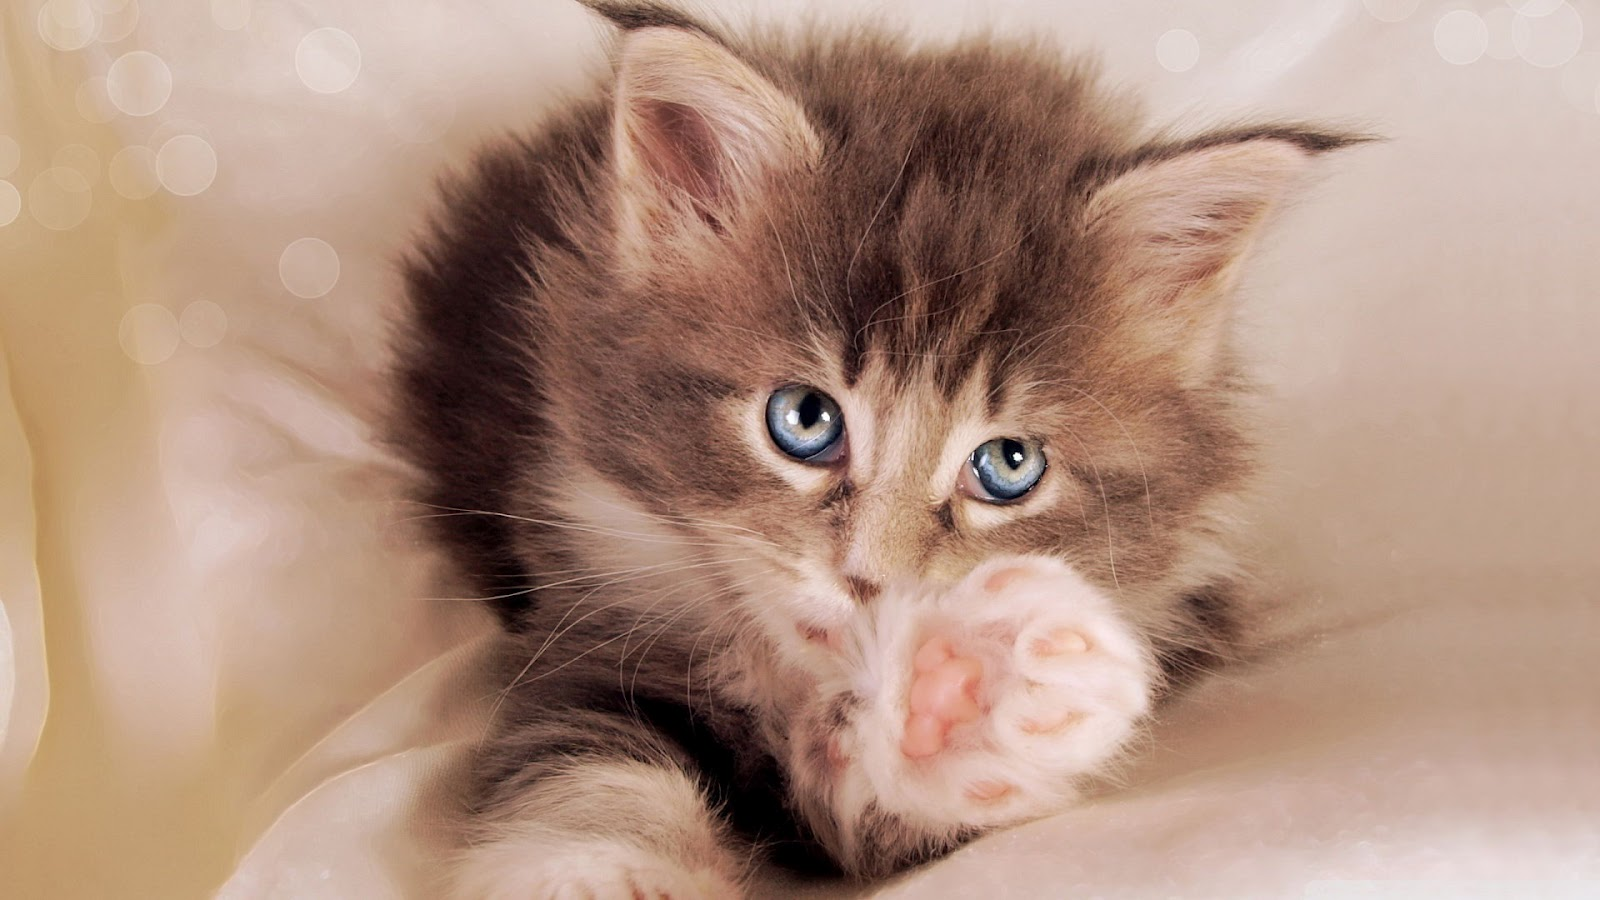 Cute+cats+theme+wallpapers+1920x1080+(13).jpeg